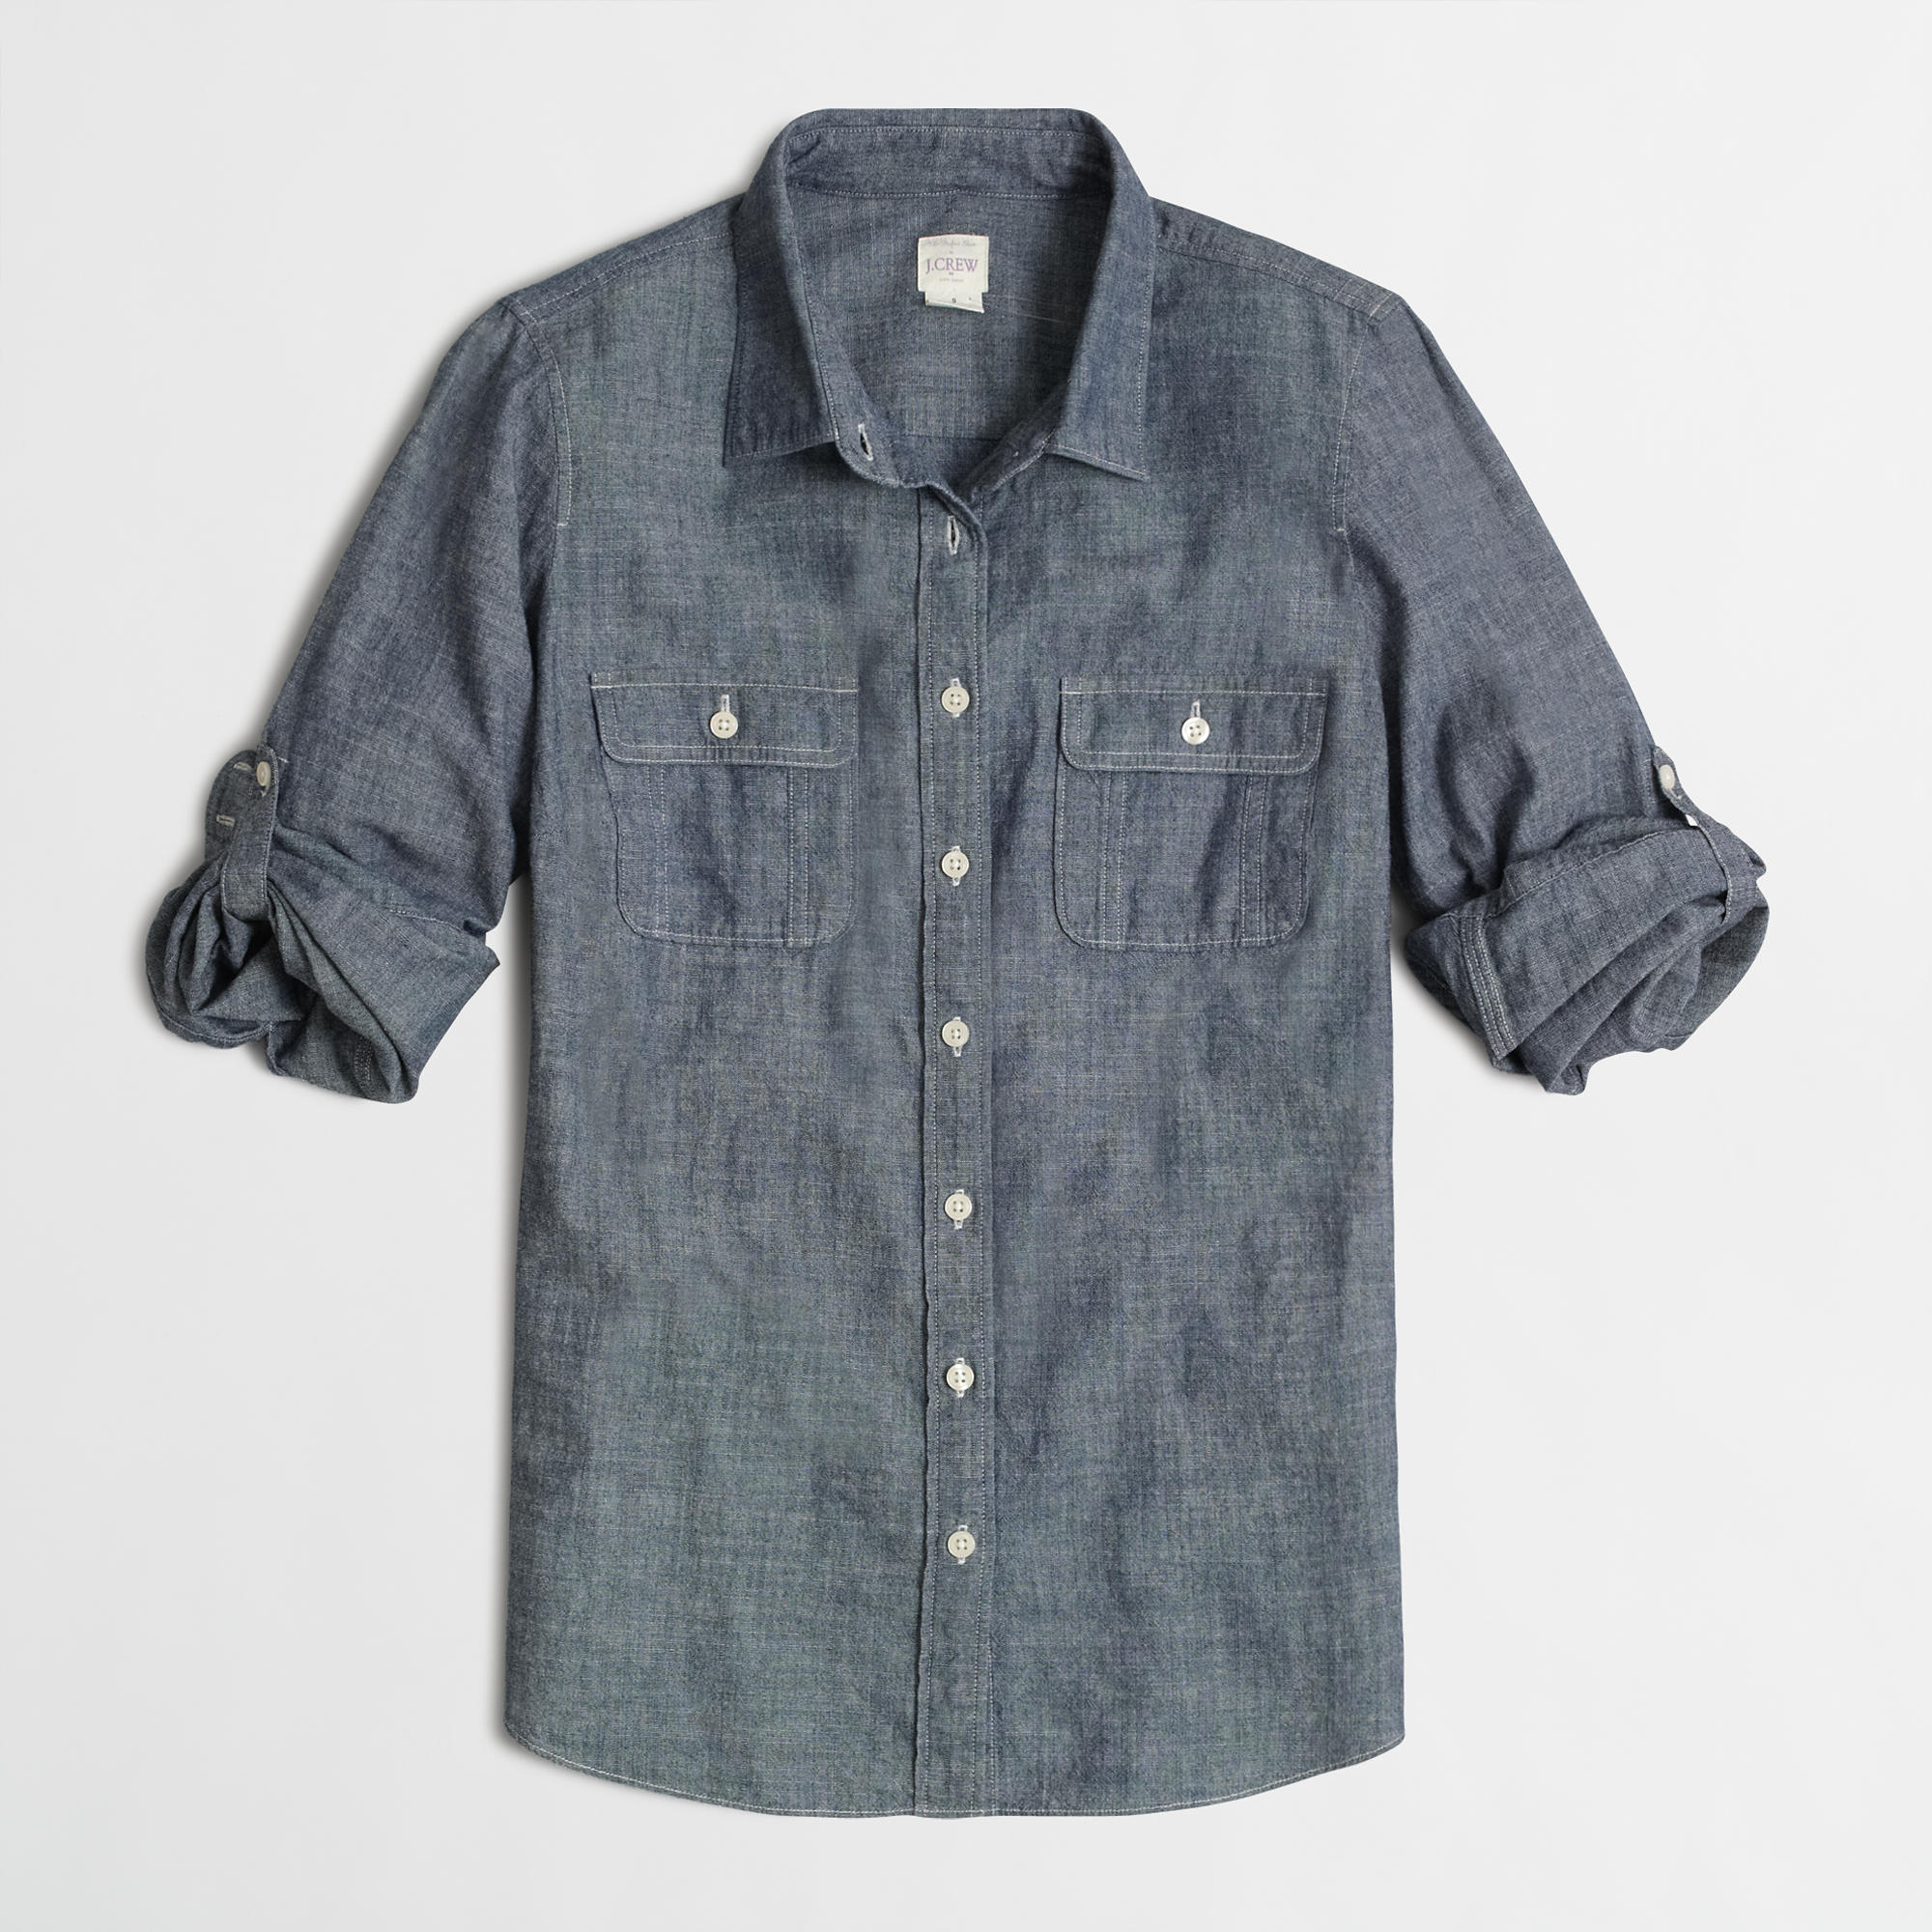 Two pocket chambray shirt women 39 s shirts j crew factory for Chambray shirt women